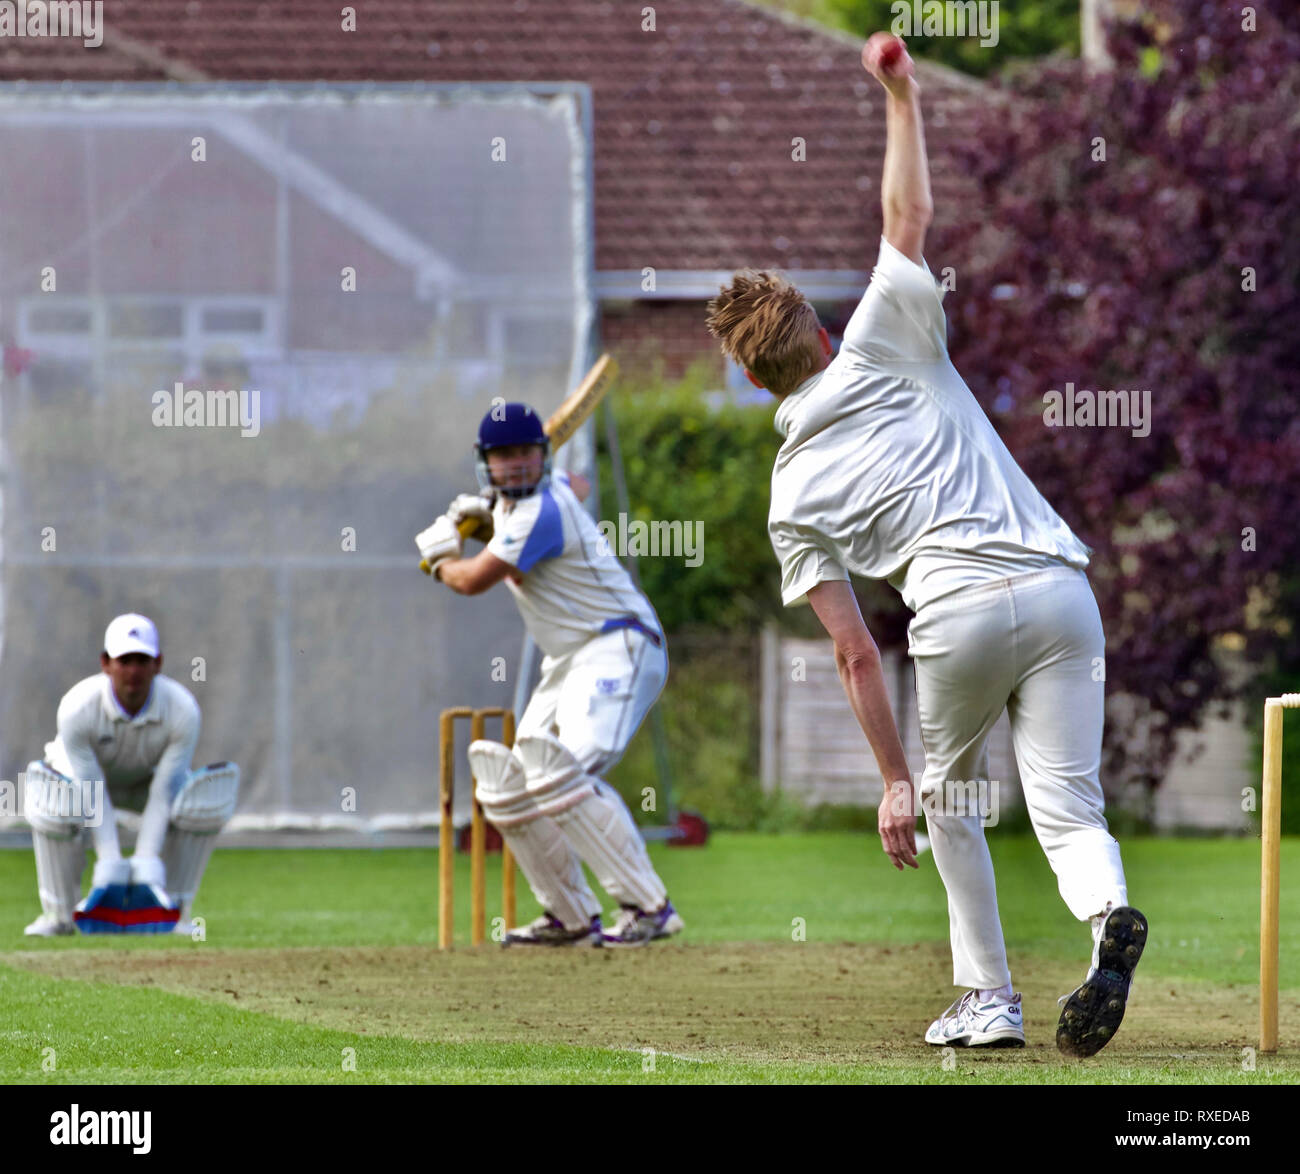 Bowler, batsman and wicket keeper - Stock Image